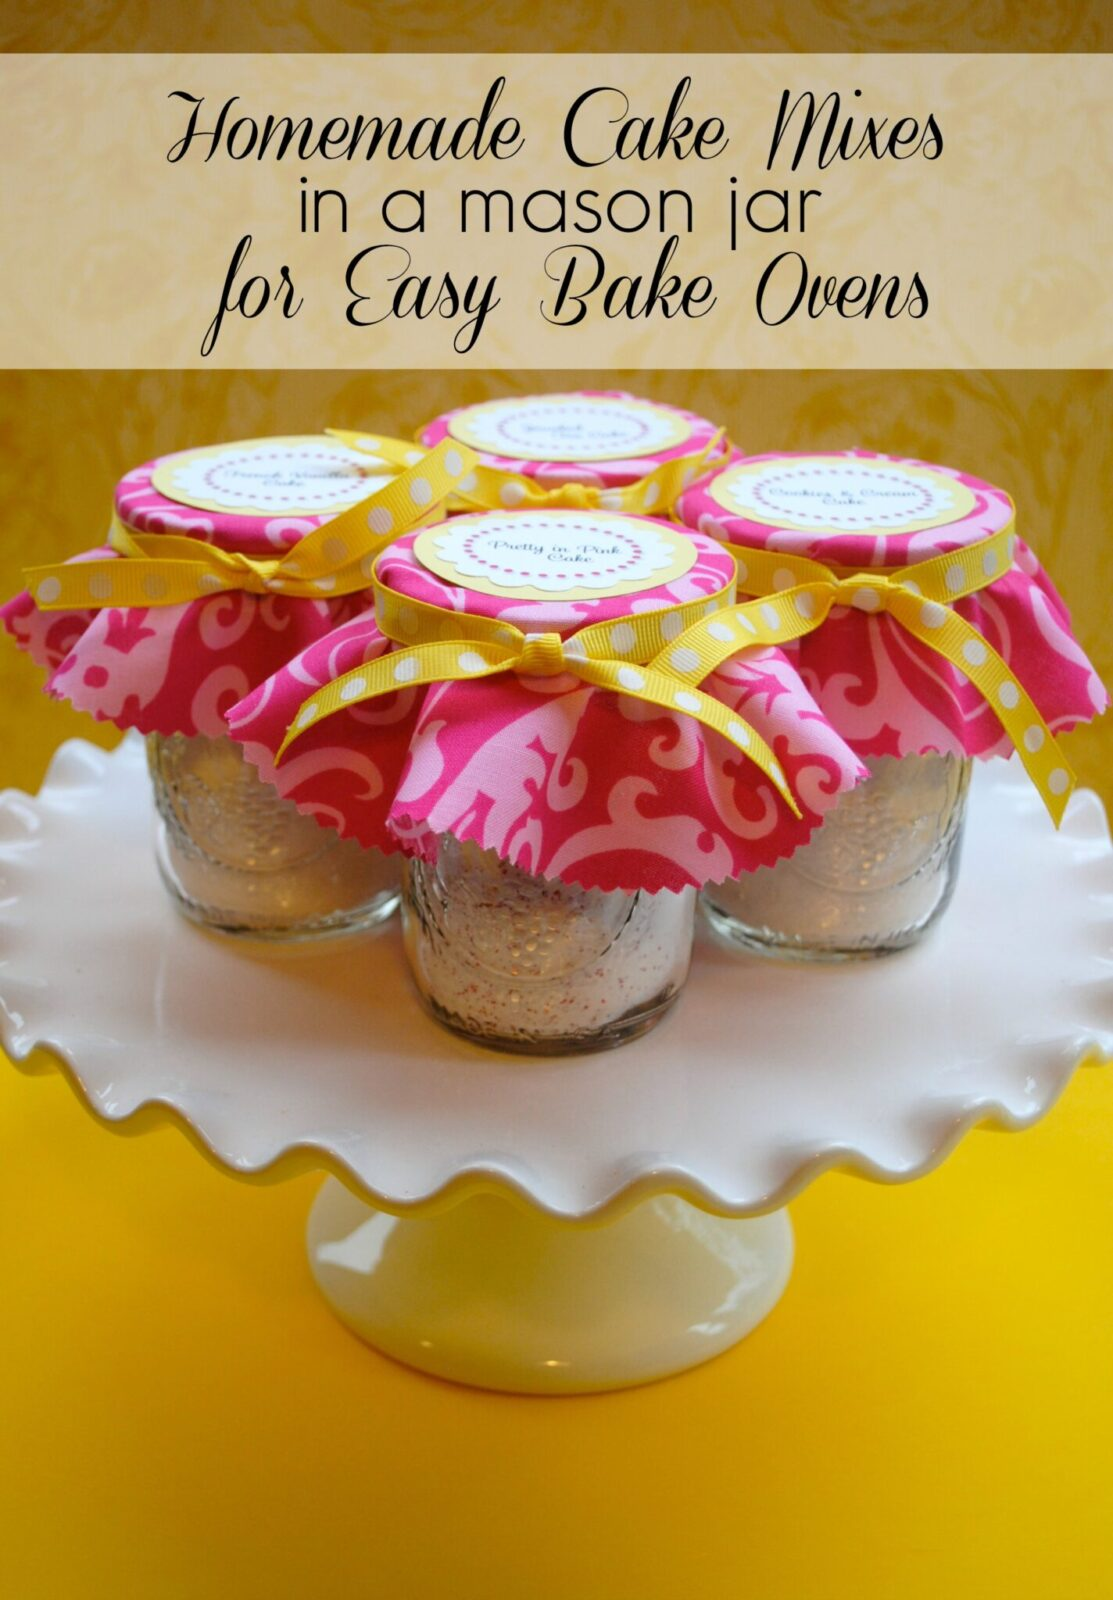 Can you make Easy Bake desserts without the mixes?